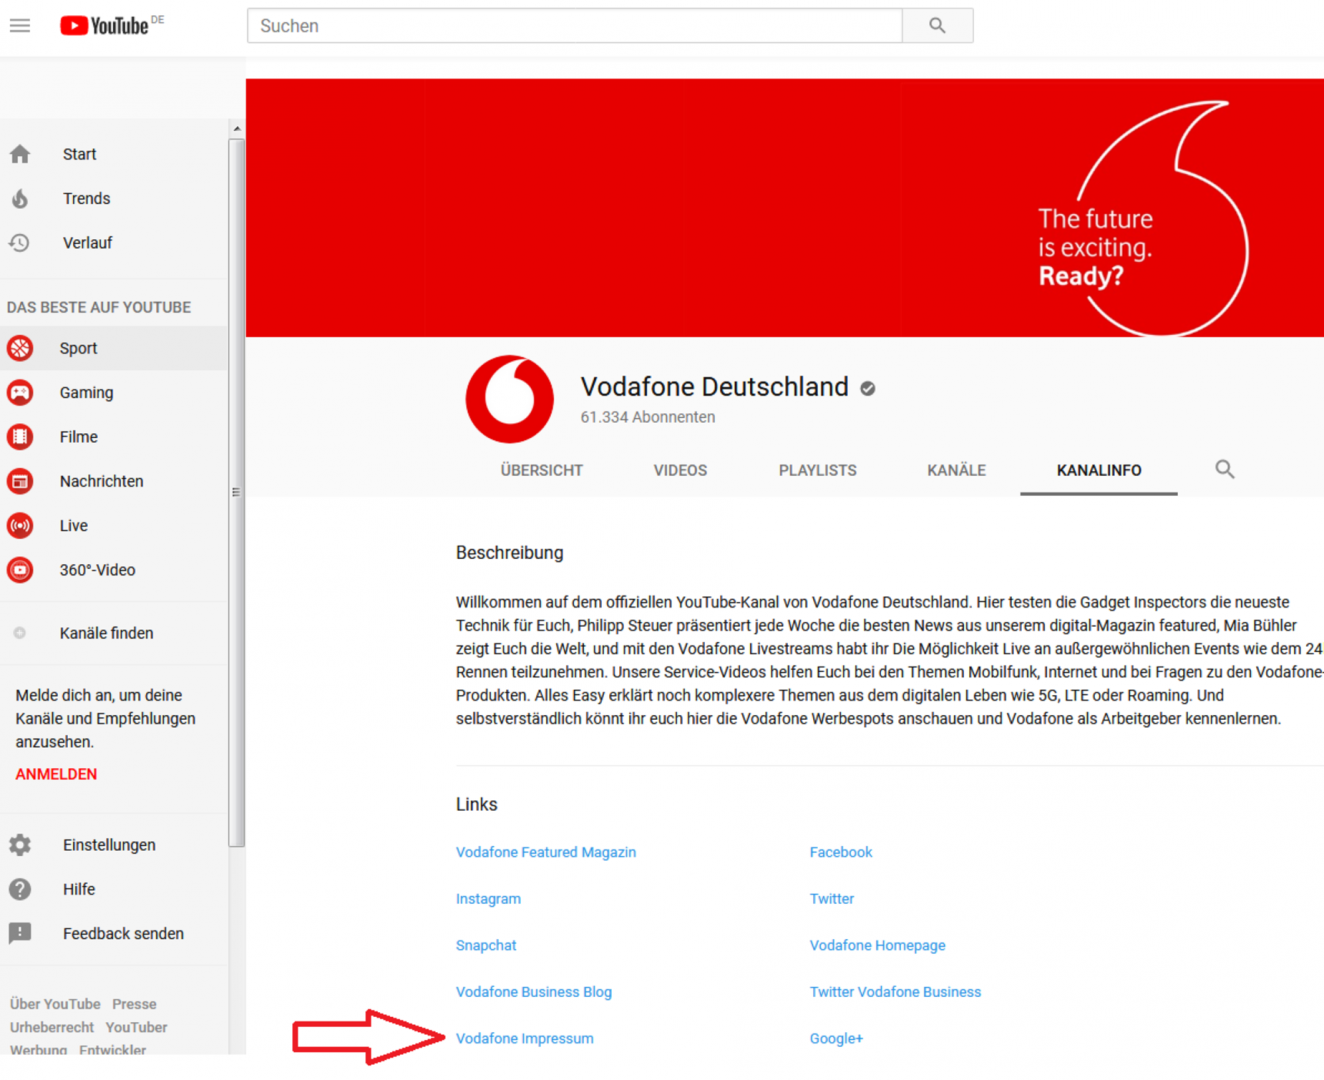 bsp-vodafone-youtube.png